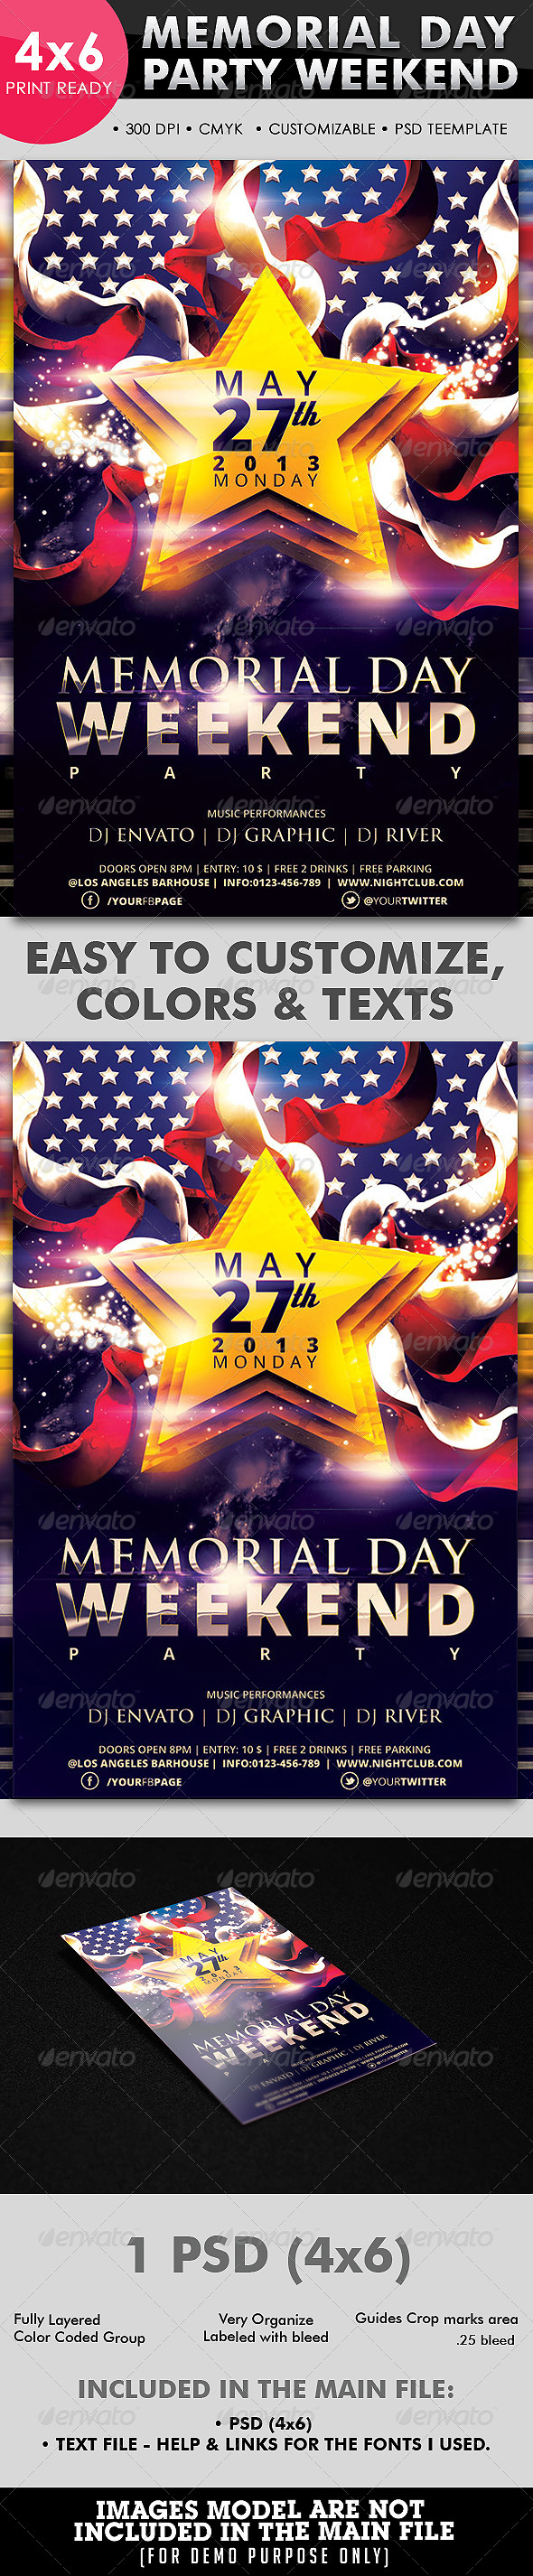 Memorial Day Weekend Party Flyer Template - Events Flyers